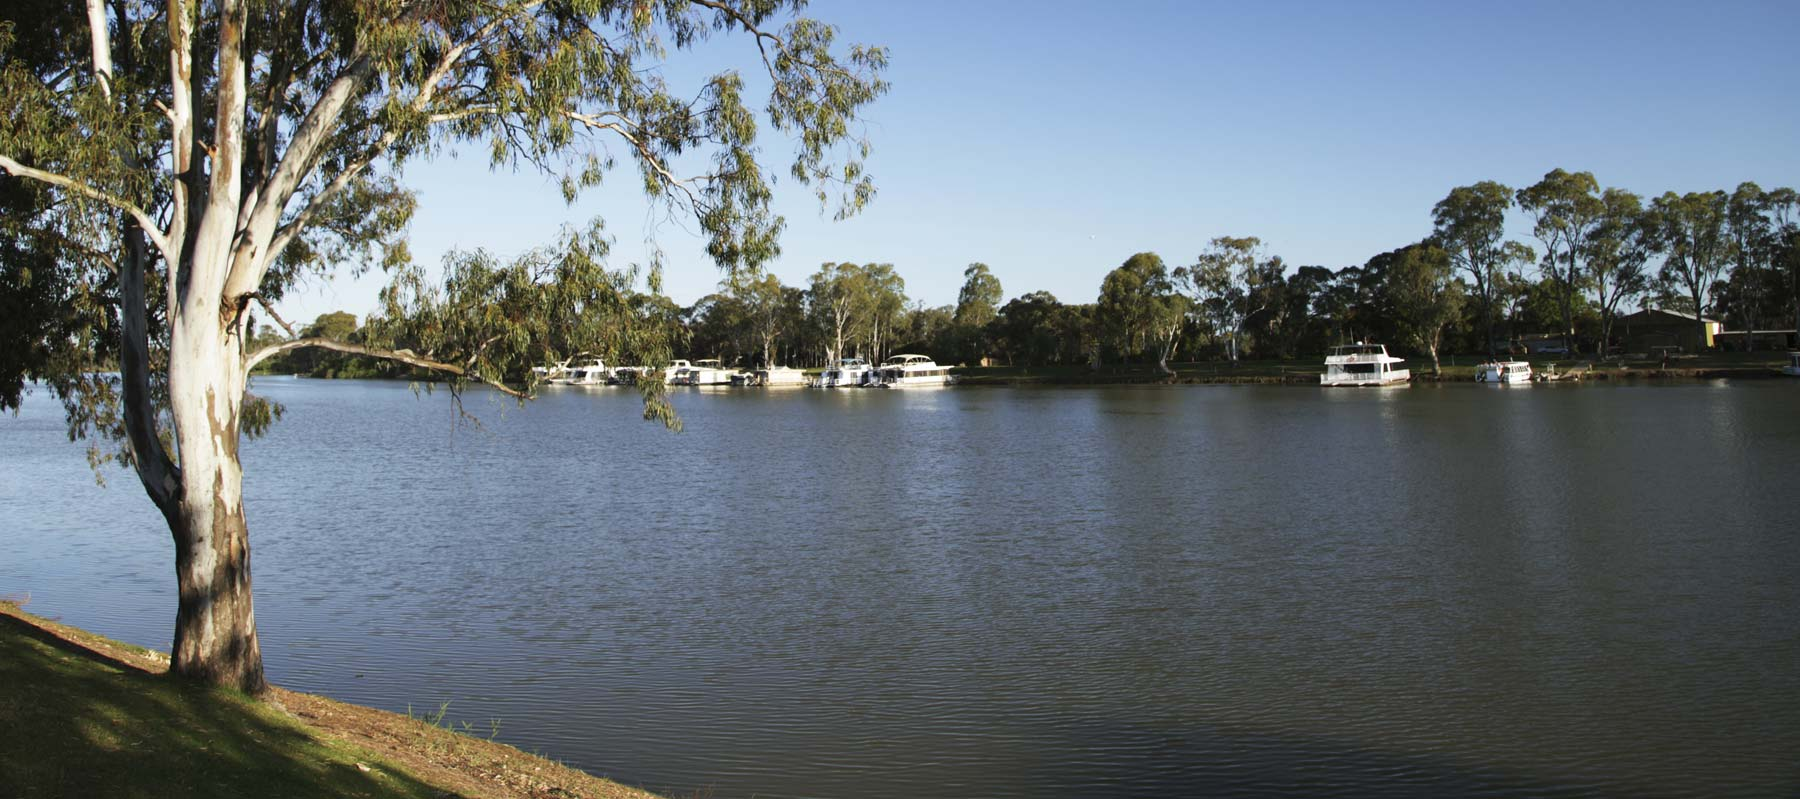 House boats on the water at Echuca Moama